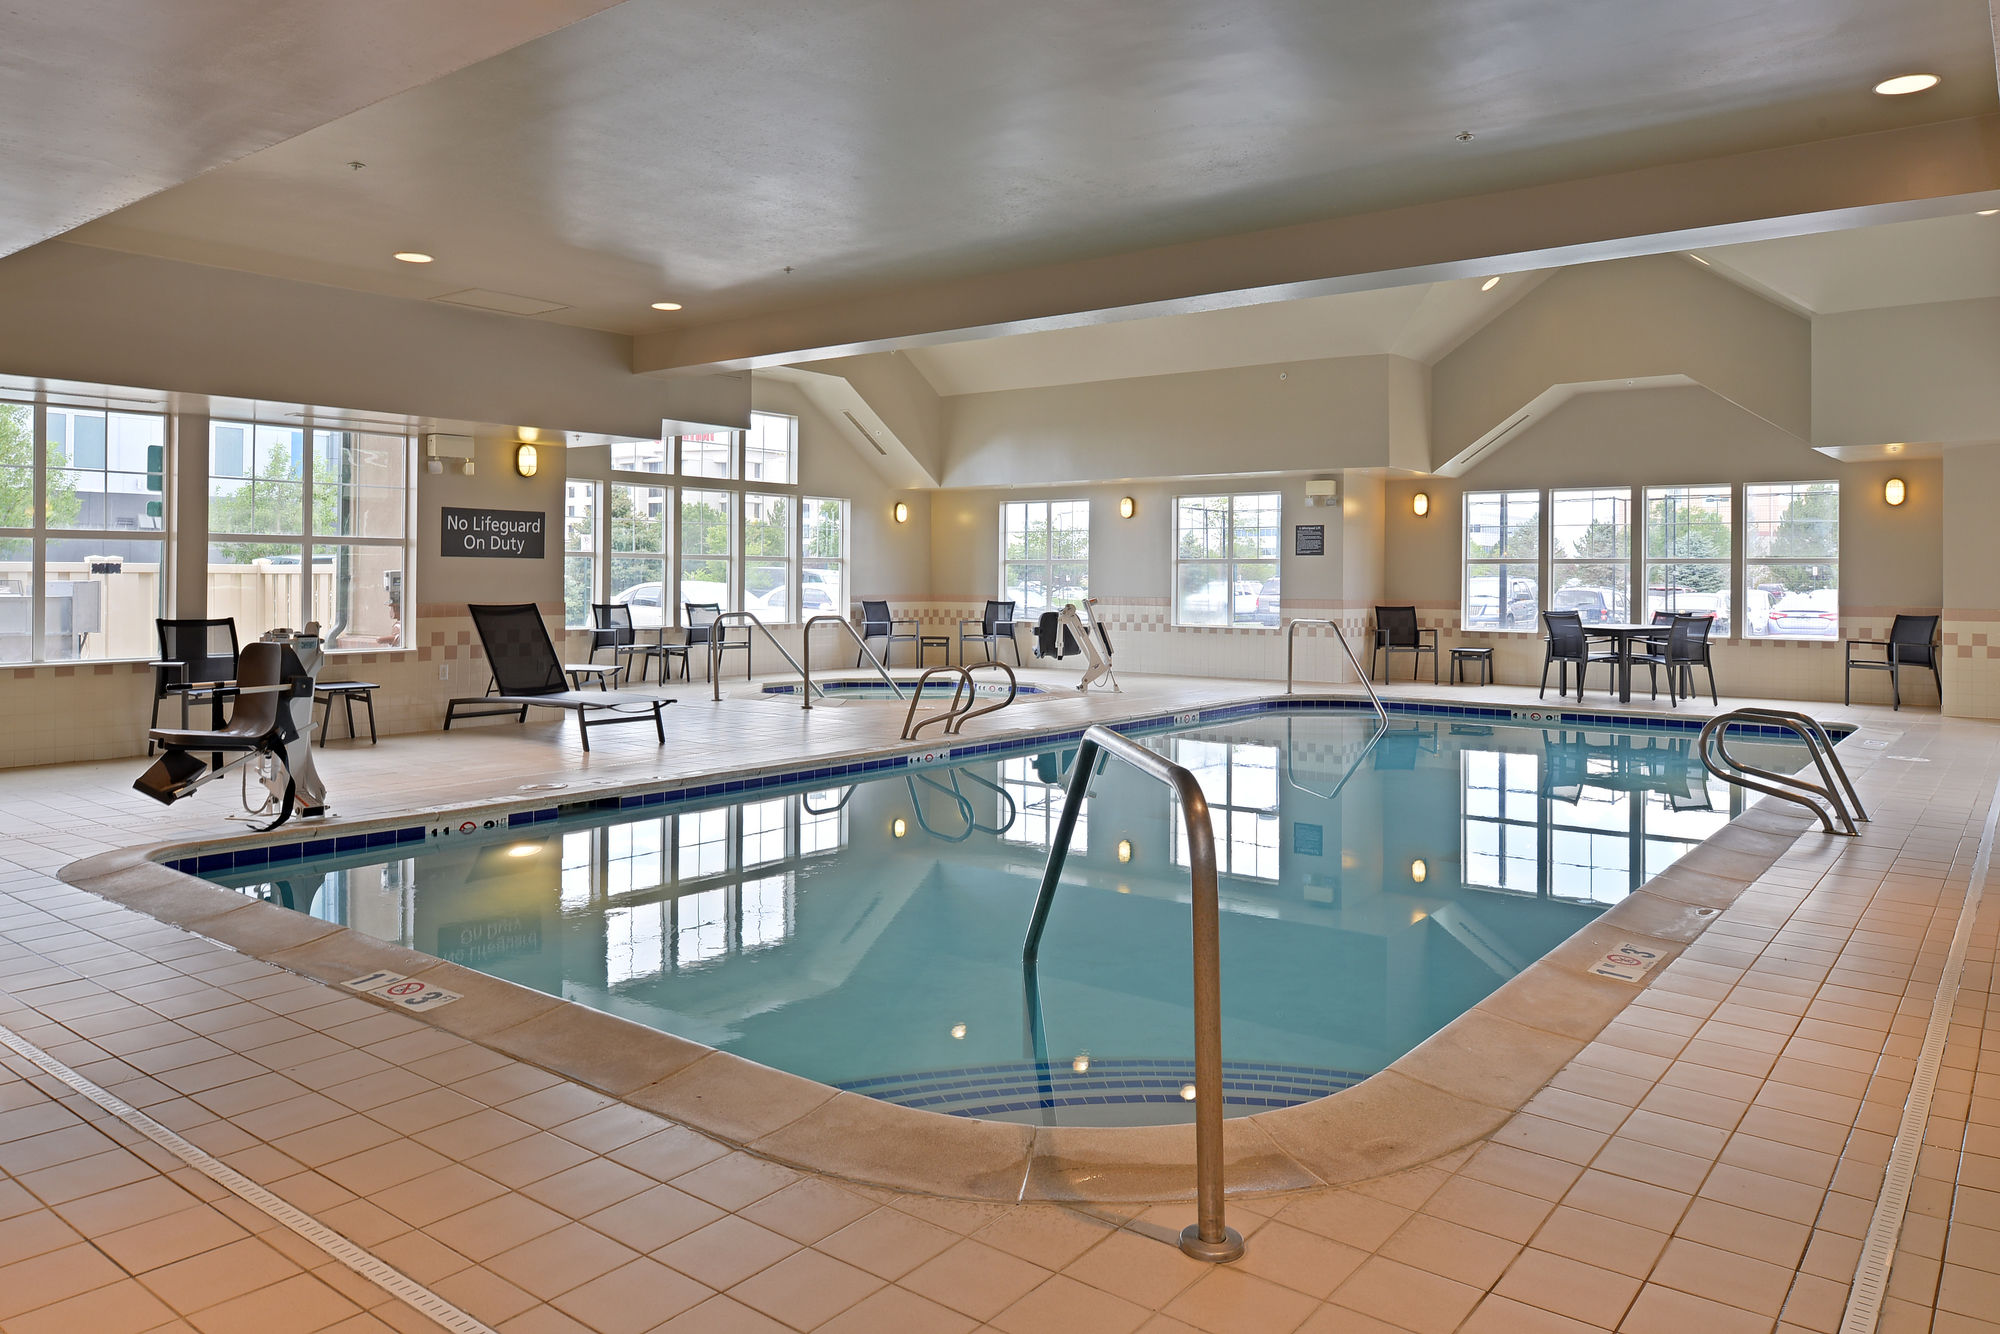 Aurora Hotel Coupons for Aurora Colorado FreeHotelCoupons